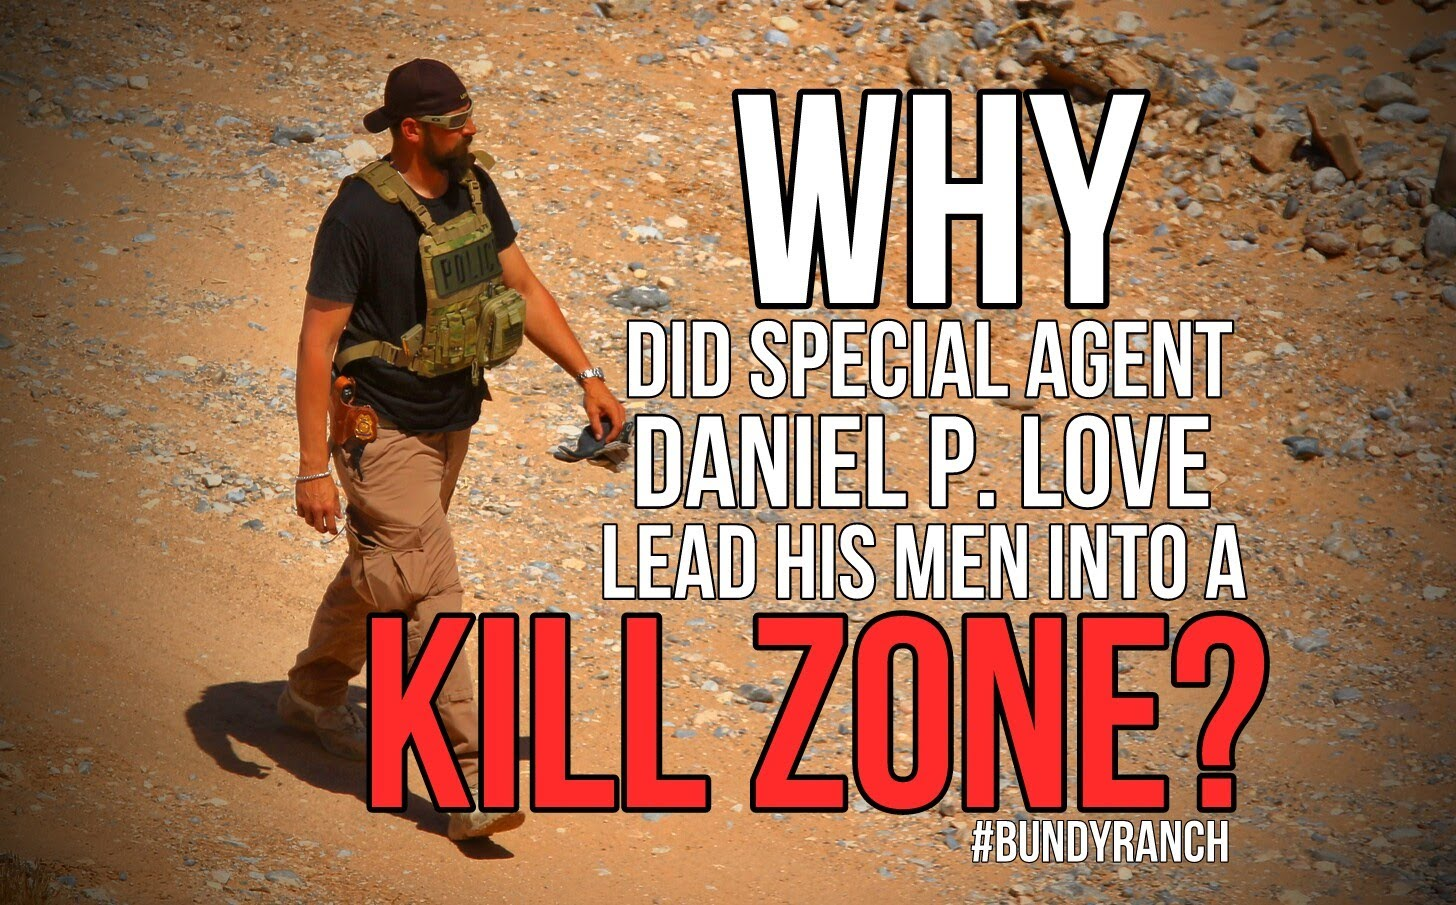 Why Would the BLM Order Personnel into a Kill Zone?